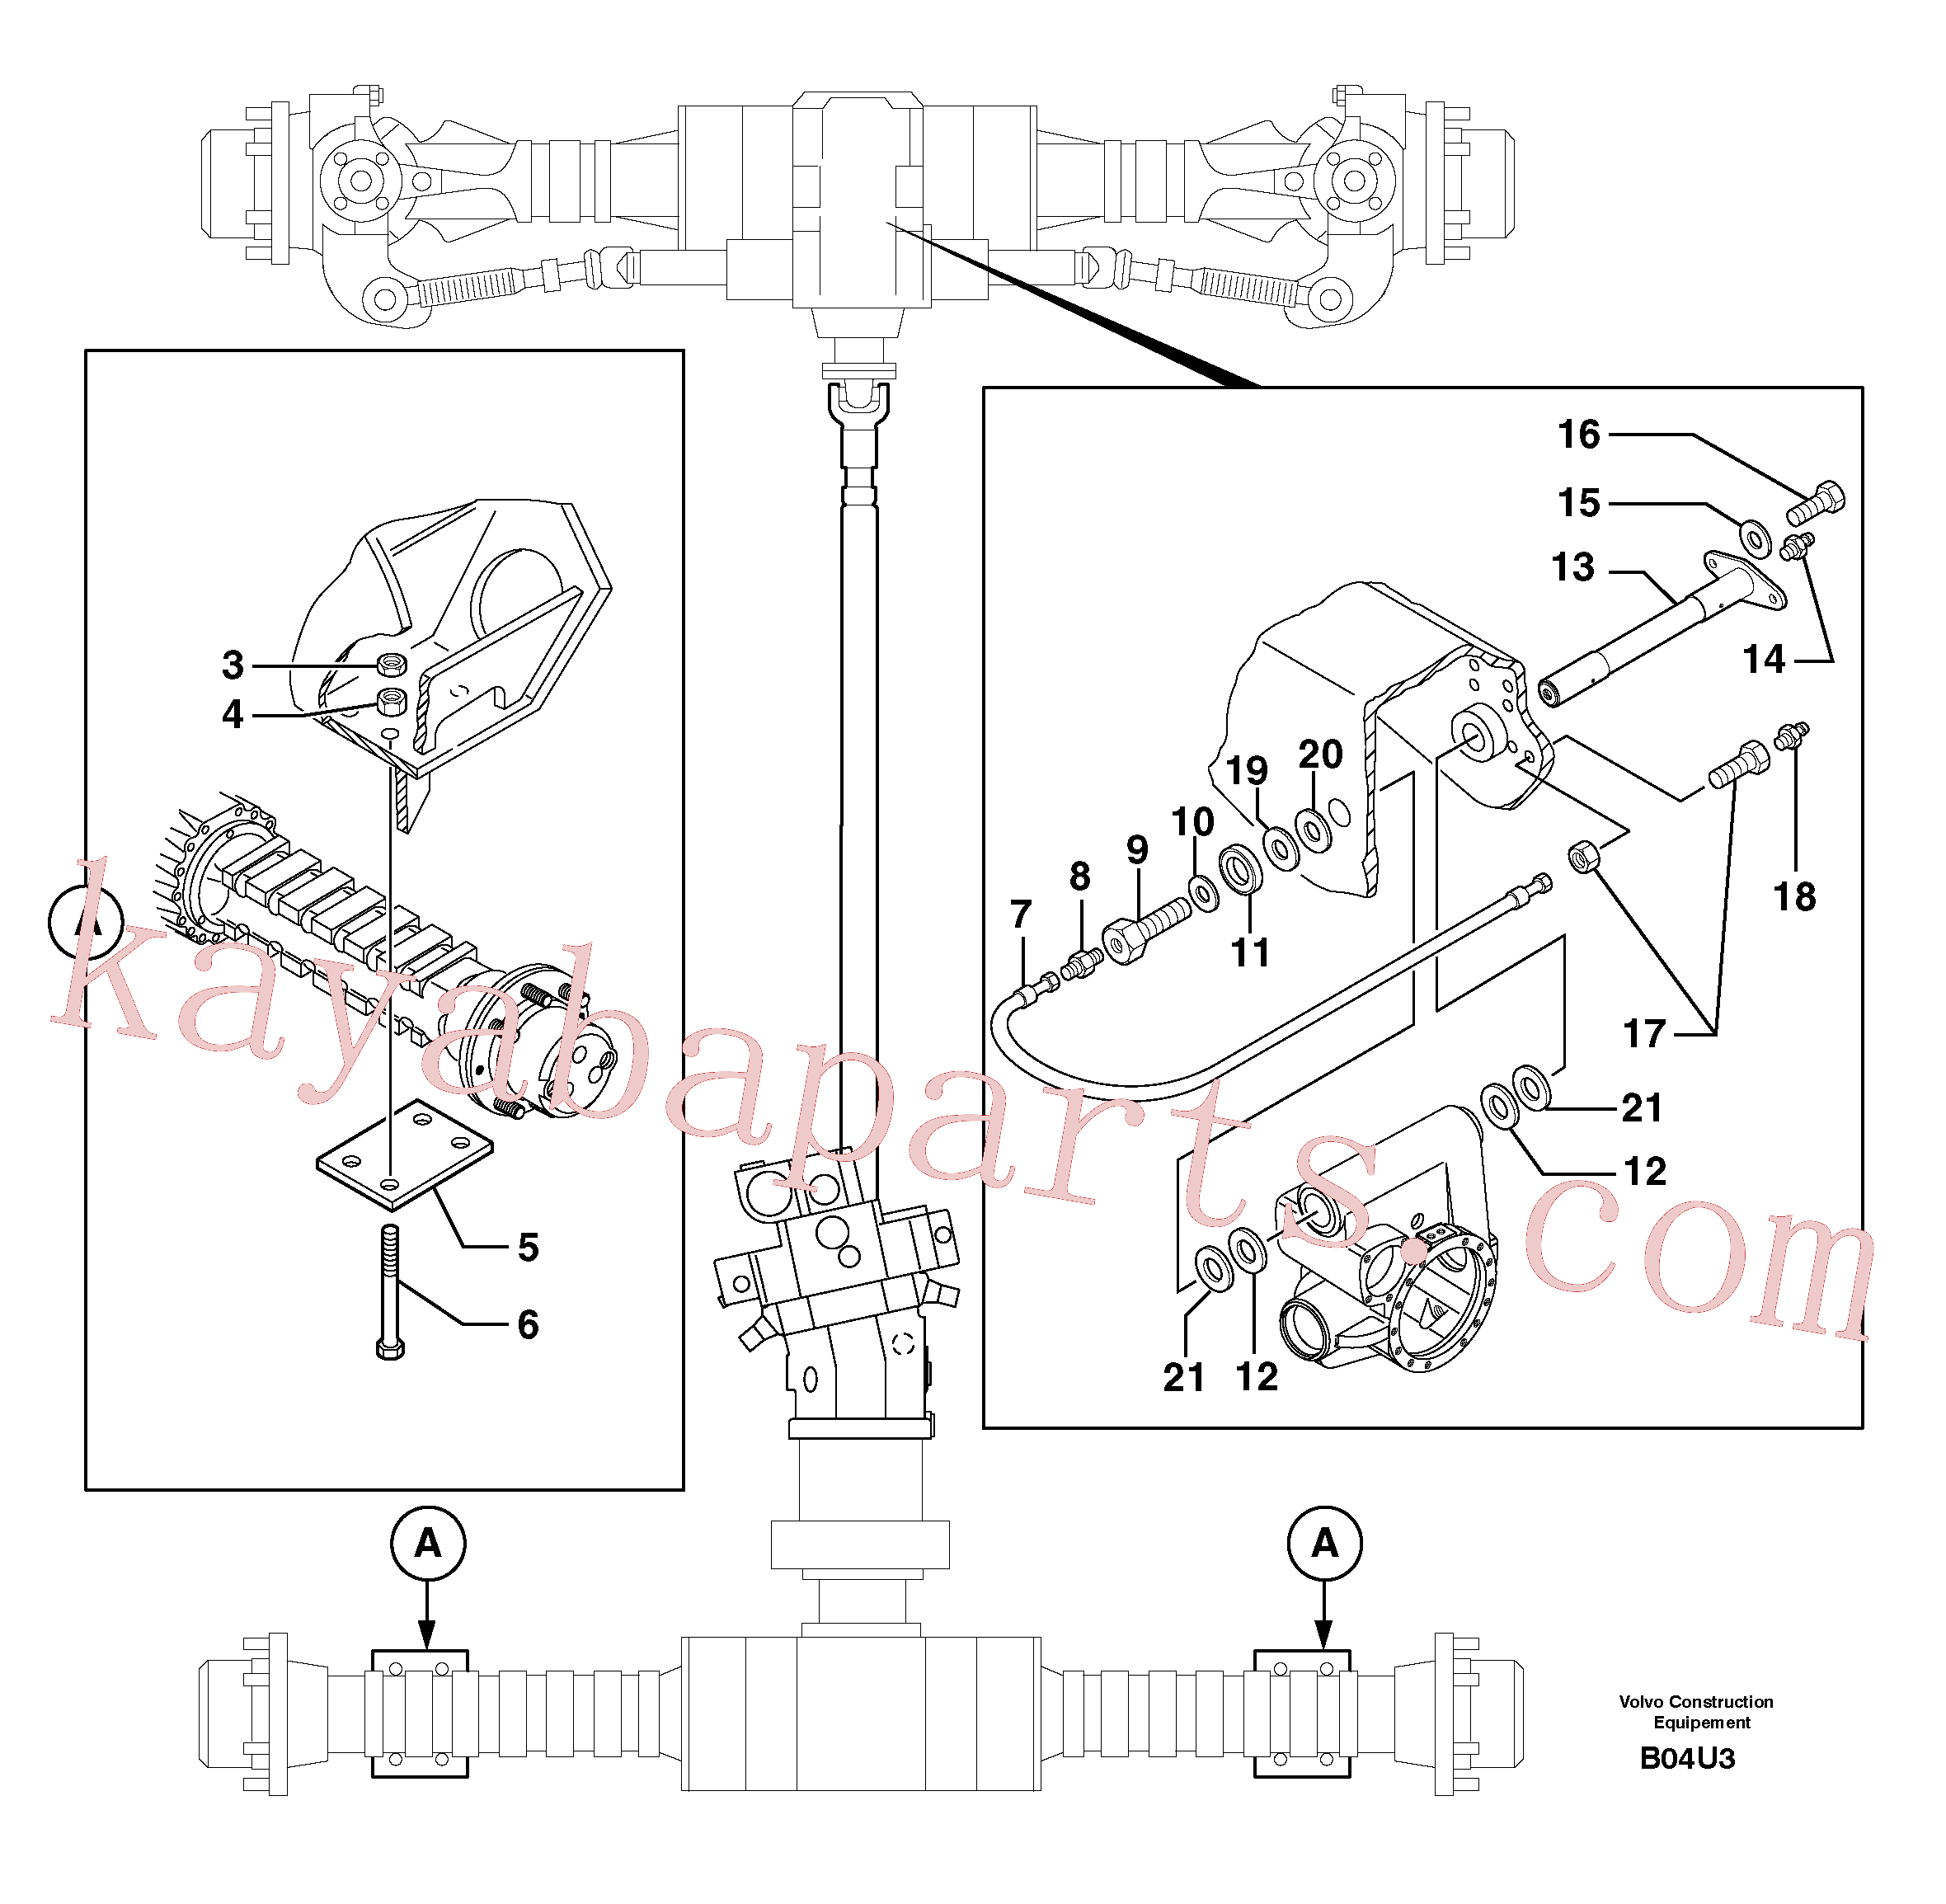 PJ4090348 for Volvo Axle cradles and mountings(B04U3 assembly)